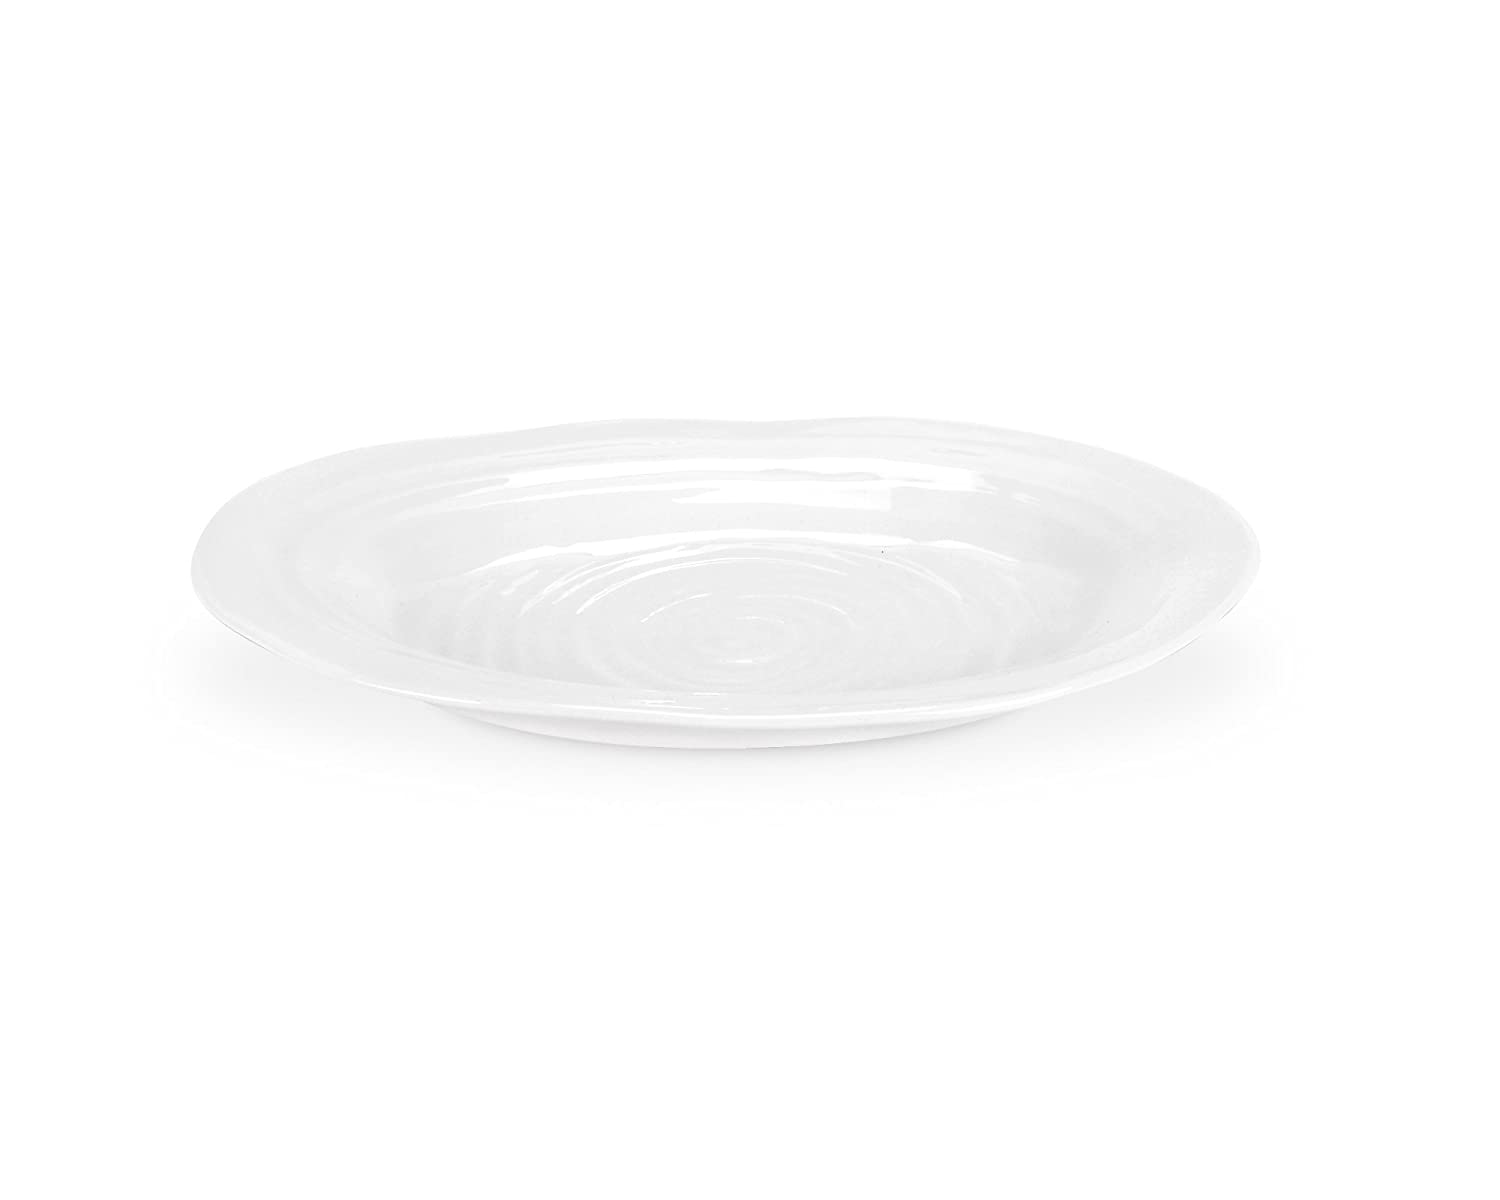 Portmeirion Sophie Conran White Small Oval Platter 434363